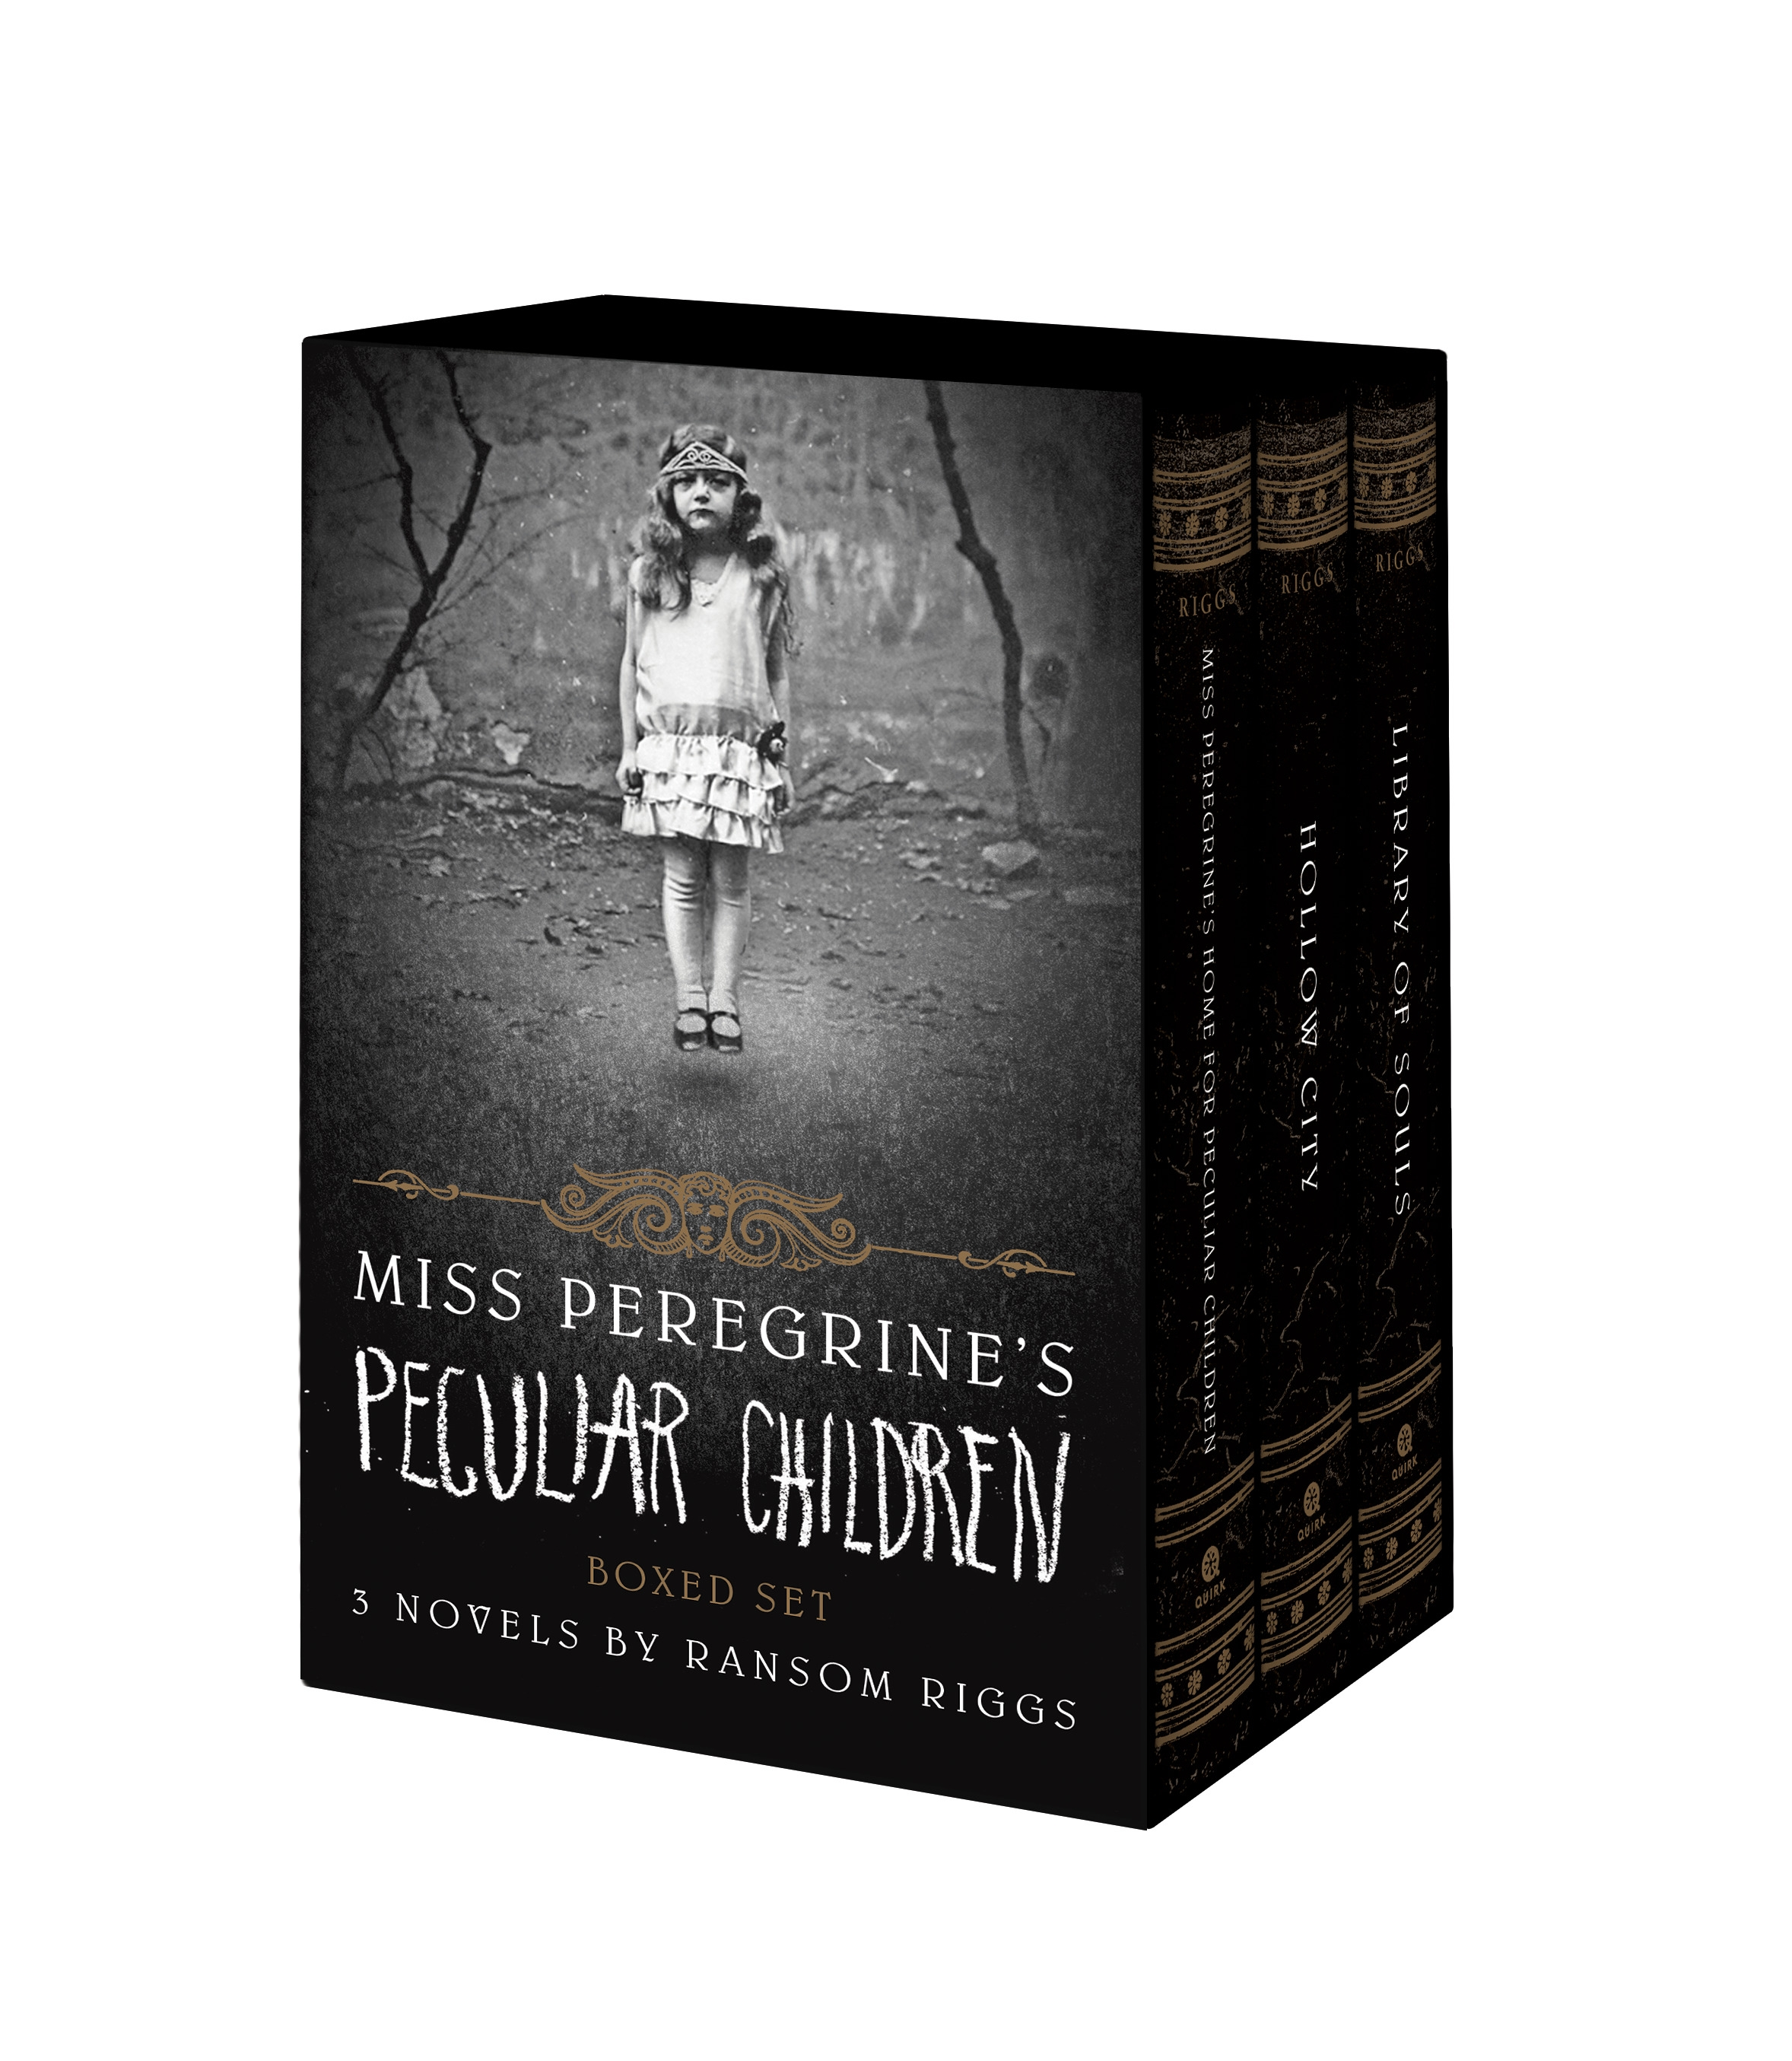 Picture of Miss Peregrine's Peculiar Children Boxed Set